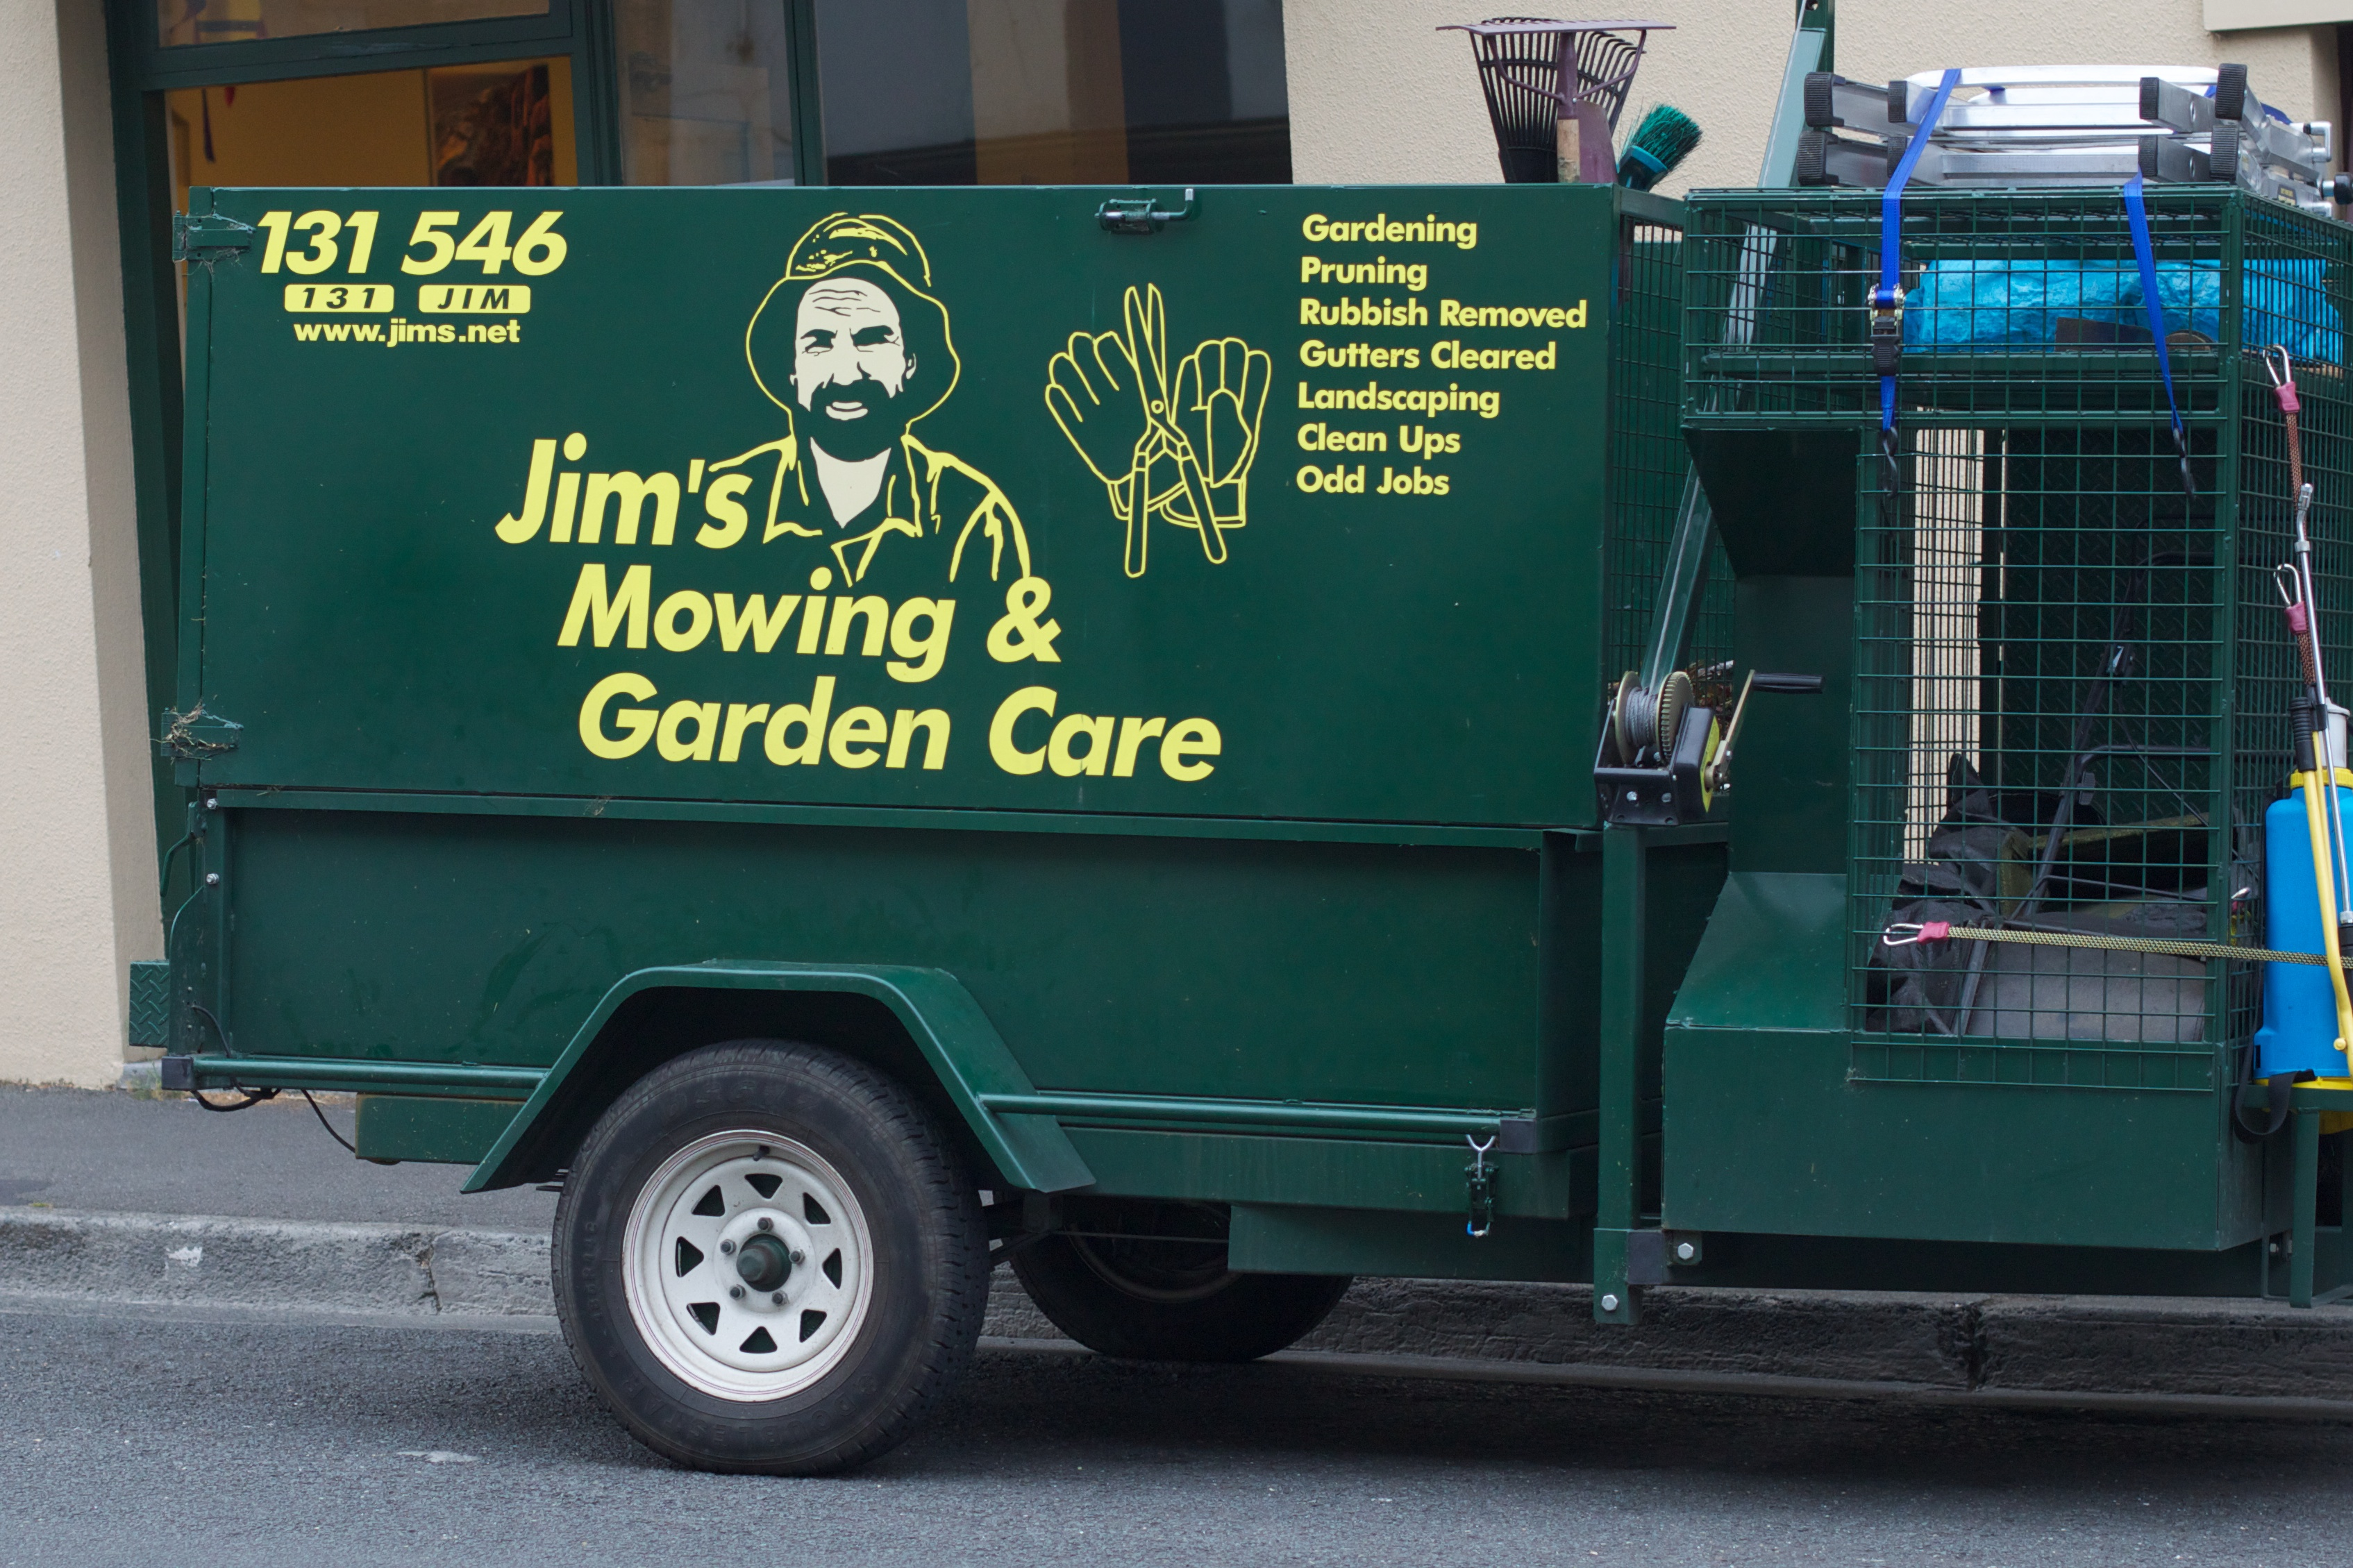 Jim's Mowing plans lawsuit against the Victorian Government